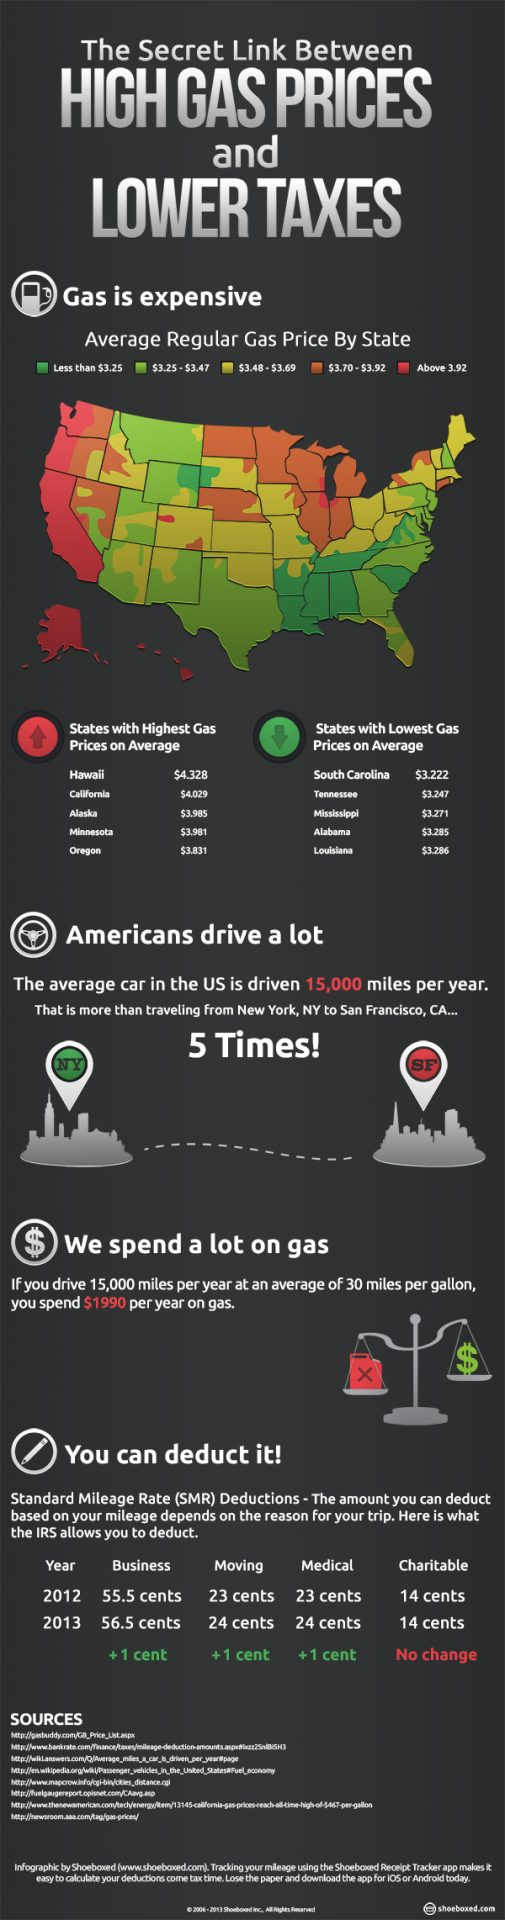 High Gas Prices and Lower Taxes Infographic by Shoeboxed